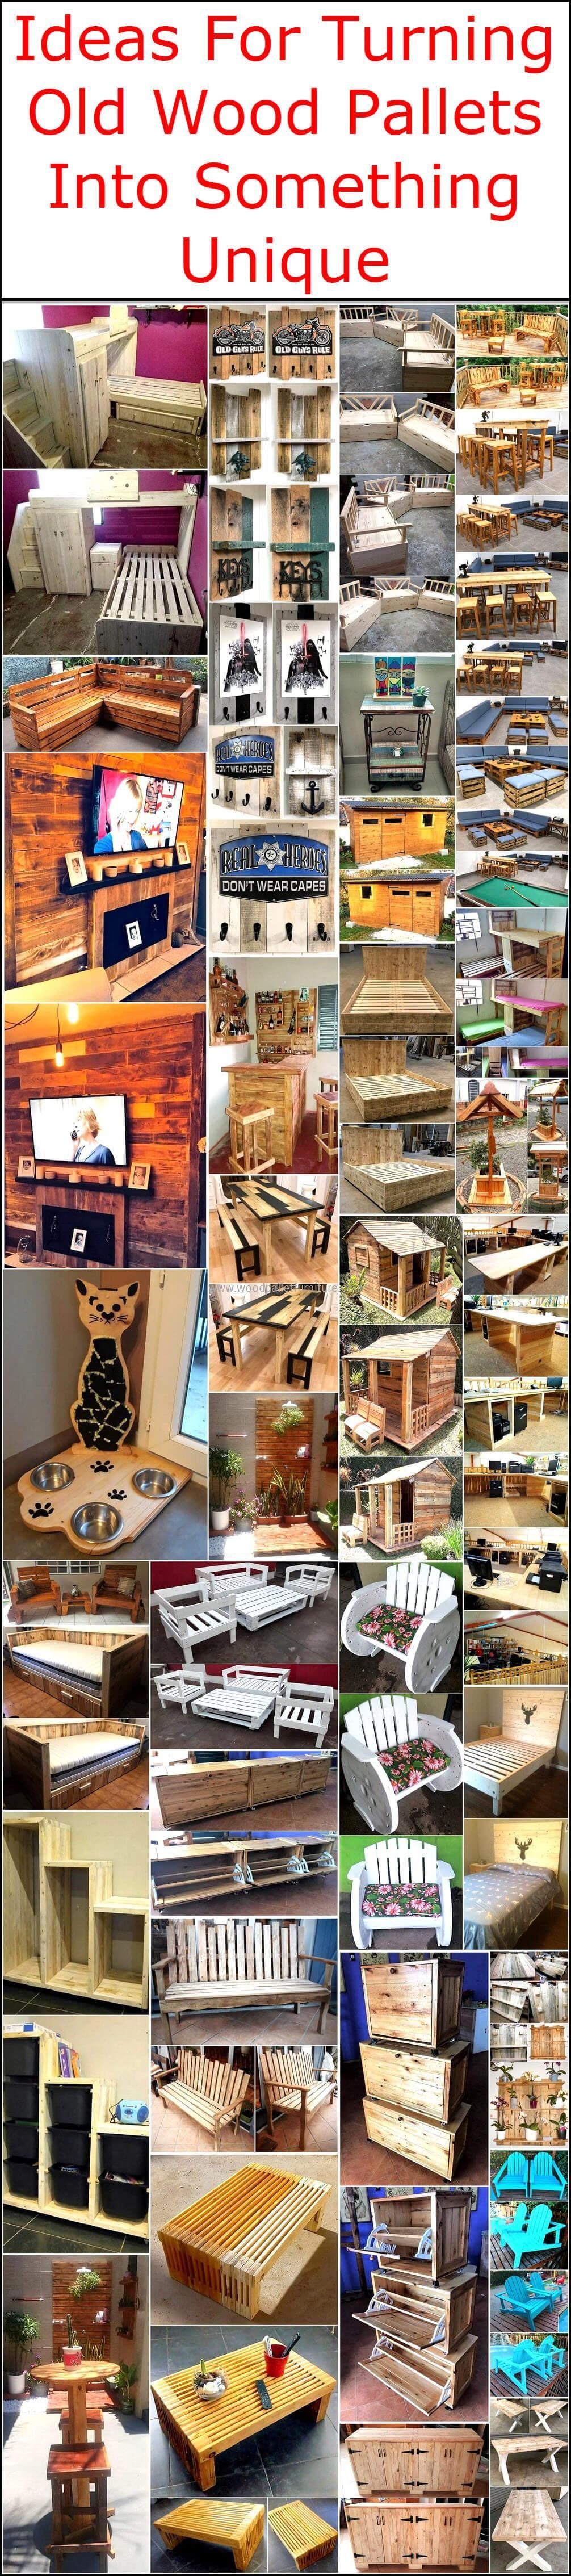 Let's retransform the beauty of our places by turning the old wooden pallets into something stunning and unique for them. These fascinating and stylish recycled wooden pallet ideas are best to create for every home, not only for decoration purposes but also for refurbishing your home with a newly created wooden product in an economical way. #woodenpalletfurniture #oldpalletsforcrafting